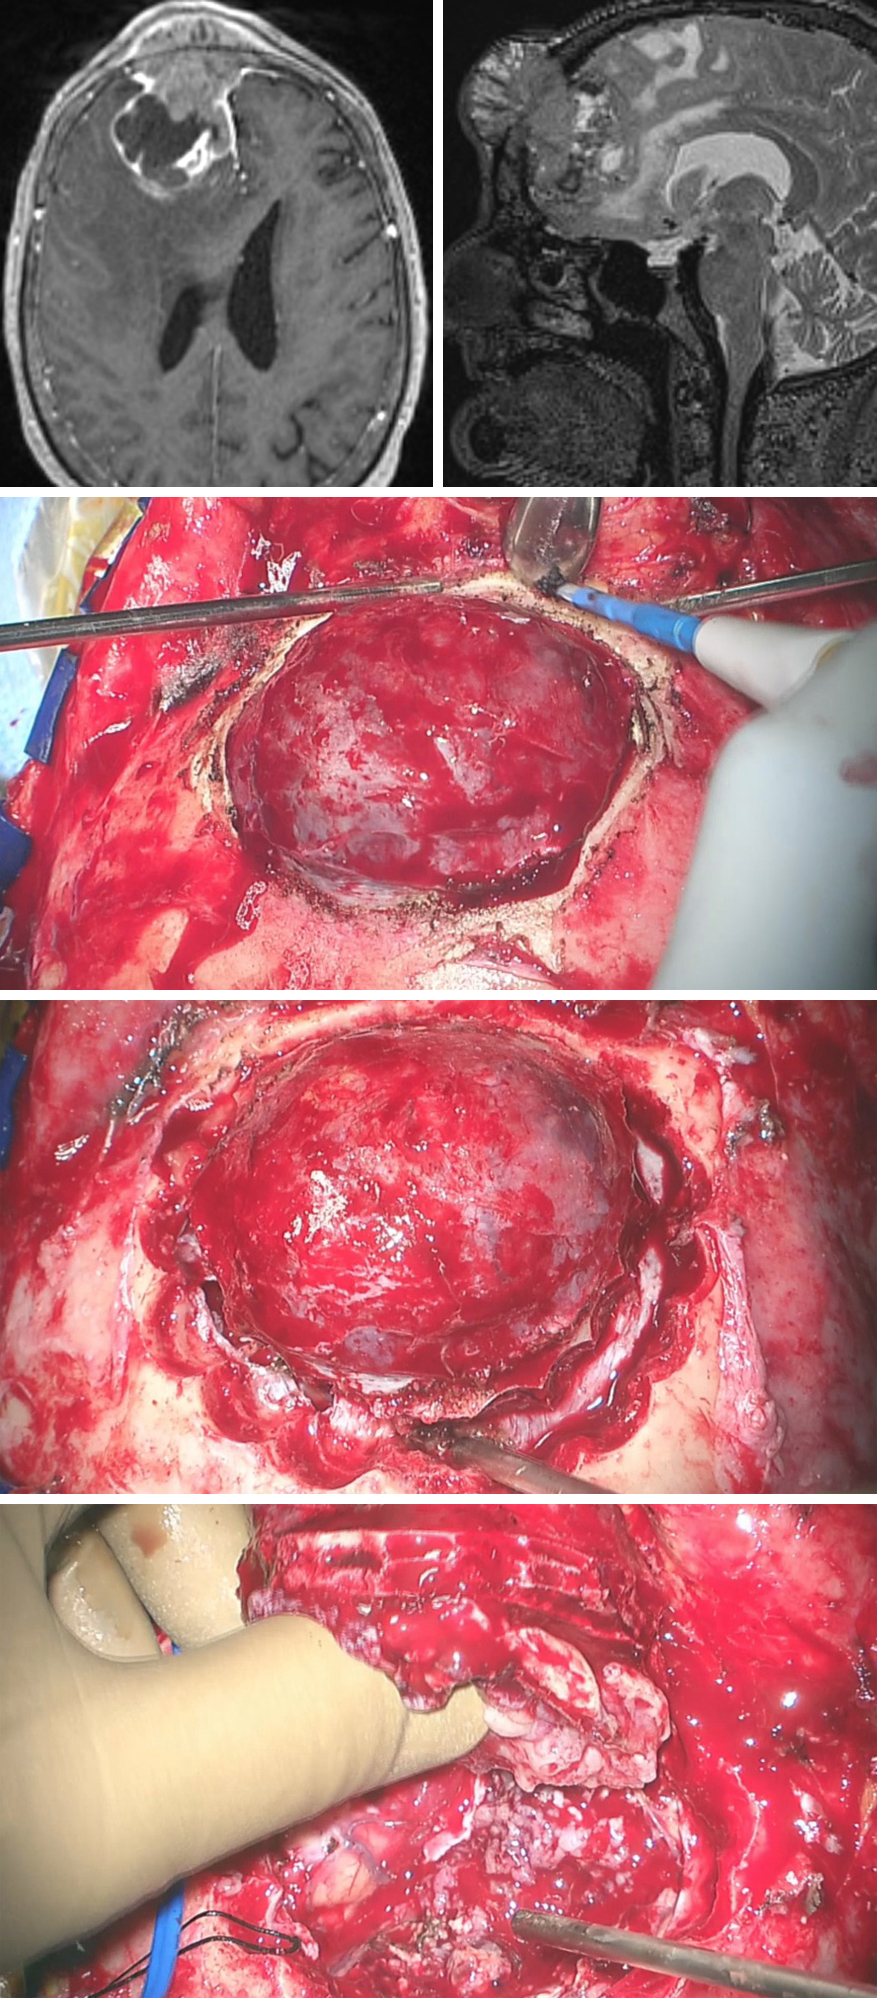 Figure 11: MR imaging demonstrated a transosseous parasagittal meningioma with significant parenchymal edema. In this case, the calverium, dura and the intradural space were affected by the tumor. The extracranial tumor was exposed upon scalp reflection (second row). Multiple burr holes were gradually placed in the periphery of the tumor so that osseous bleeding is controlled in a timely fashion (third row). The dura was incised circumferentially within the connected burr holes and the majority of the tumor was removed  en bloc  (last row). The intradural portion of the tumor that was adherent to the pia was resected in a second step.